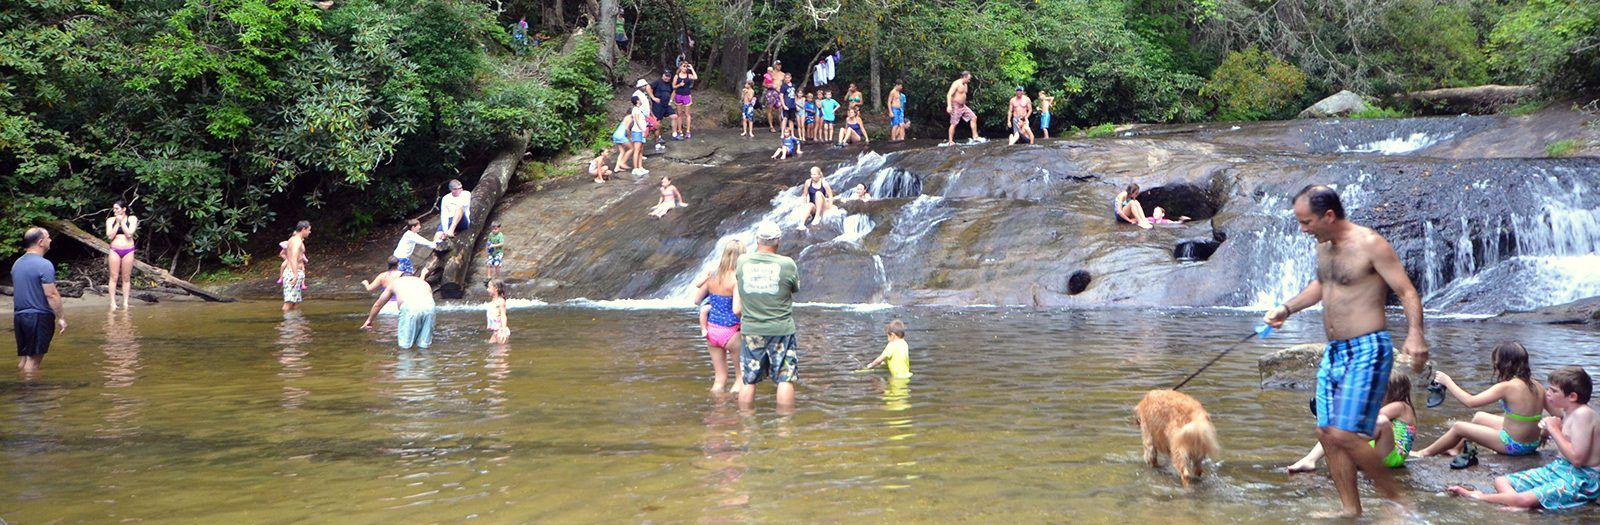 families playing and sliding down the waterfall of sliding rock in jackson county